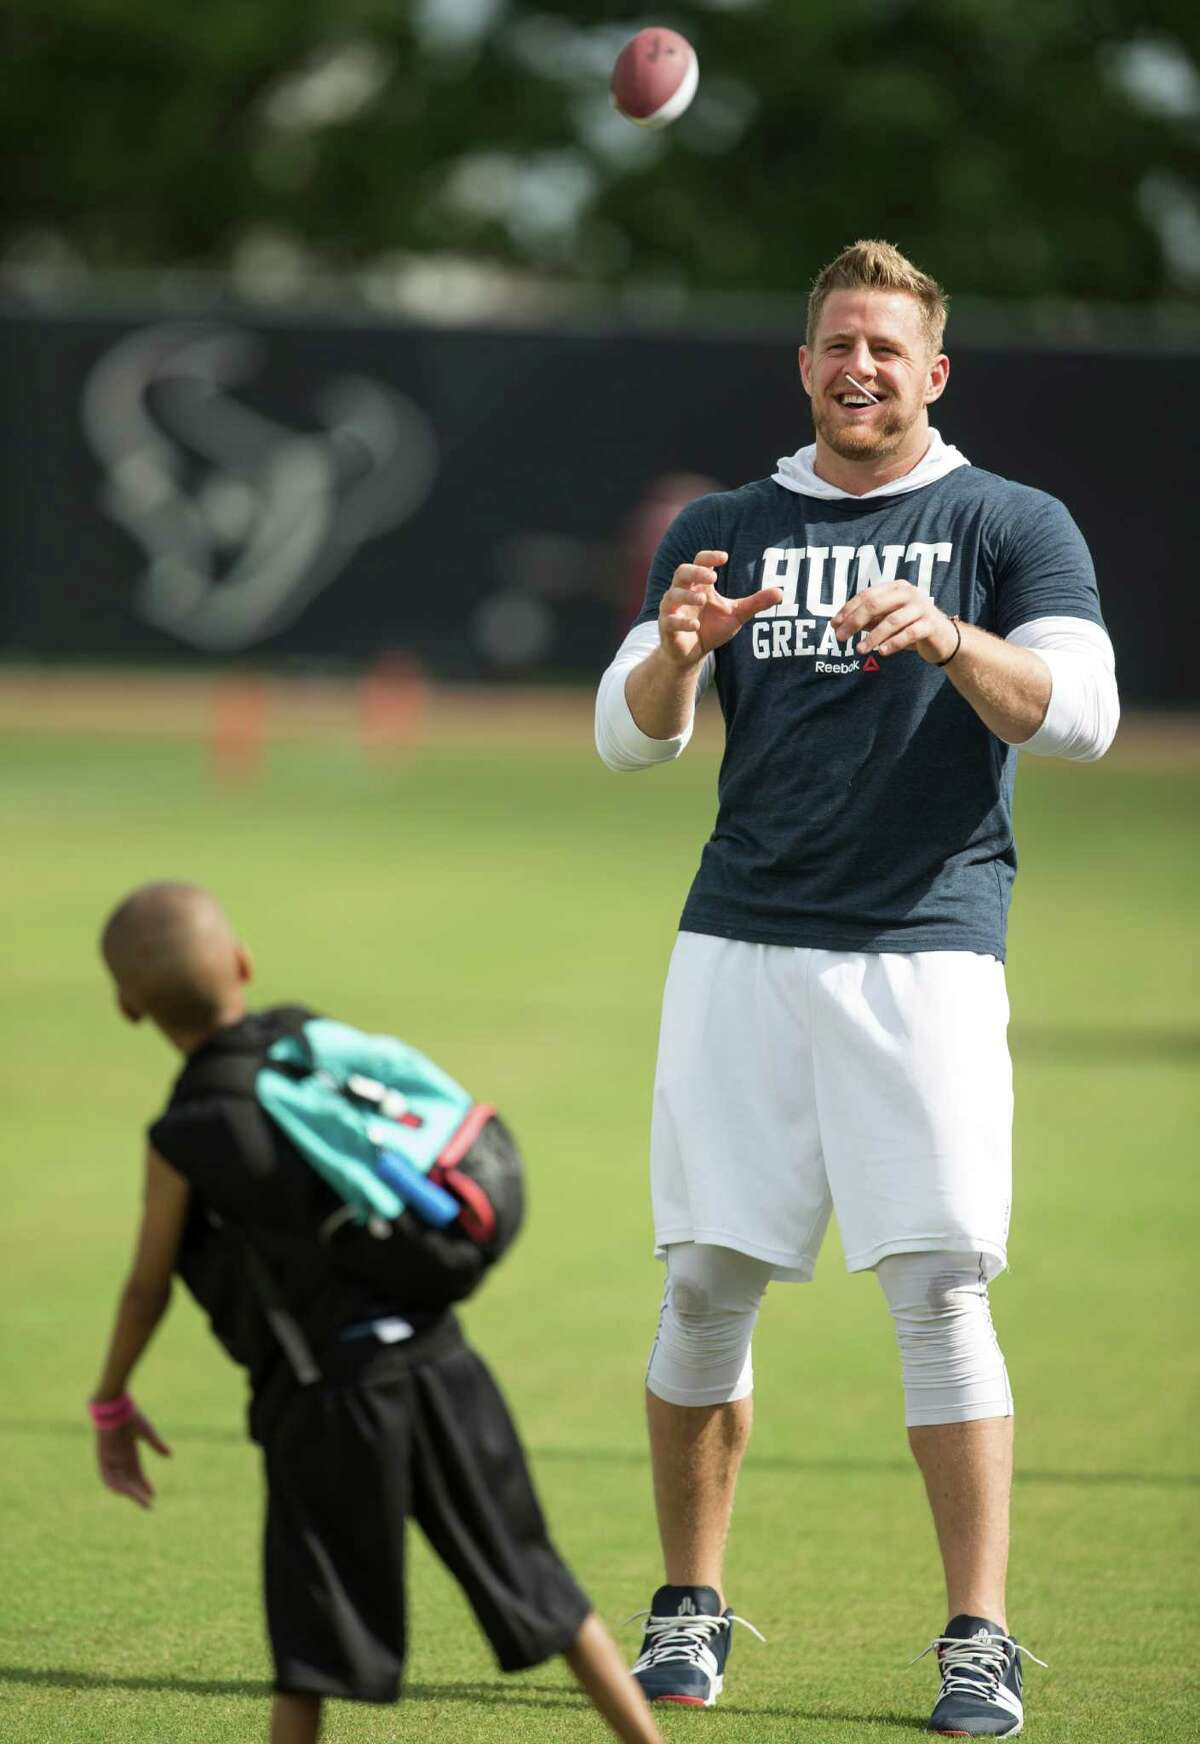 Houston Texans defensive end J.J. Watt plays catch with Jeston Adams during Texans training camp at Houston Methodist Training Center on Sunday, July 31, 2016, in Houston. Watt is unable to practice as he is recovering from back surgery.